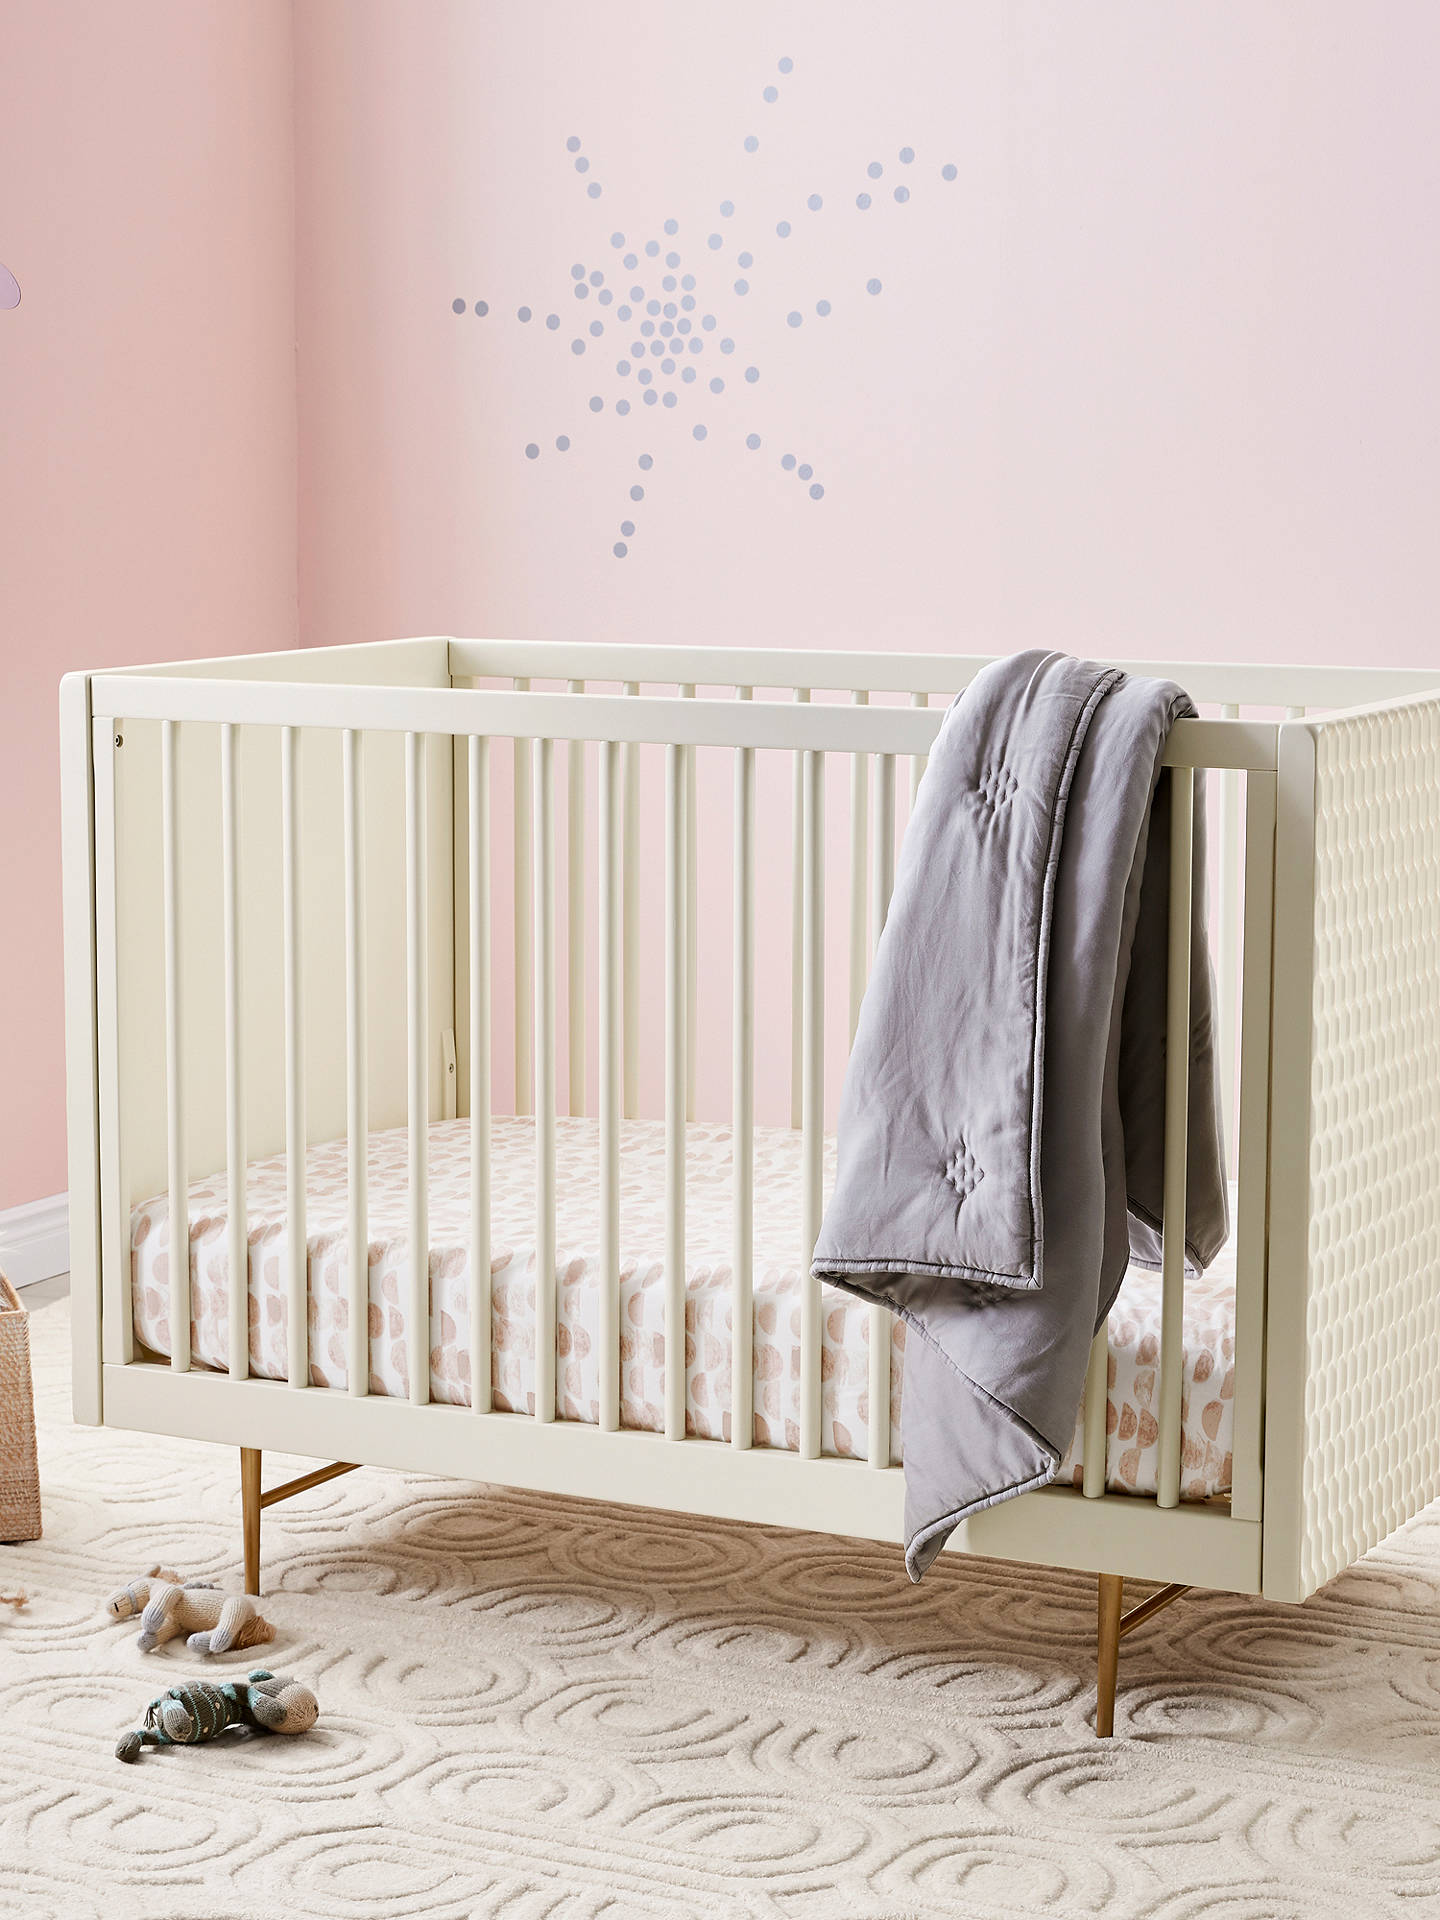 Buy Pottery Barn Kids Audrey Convertible Cotbed, Parchment Online at johnlewis.com